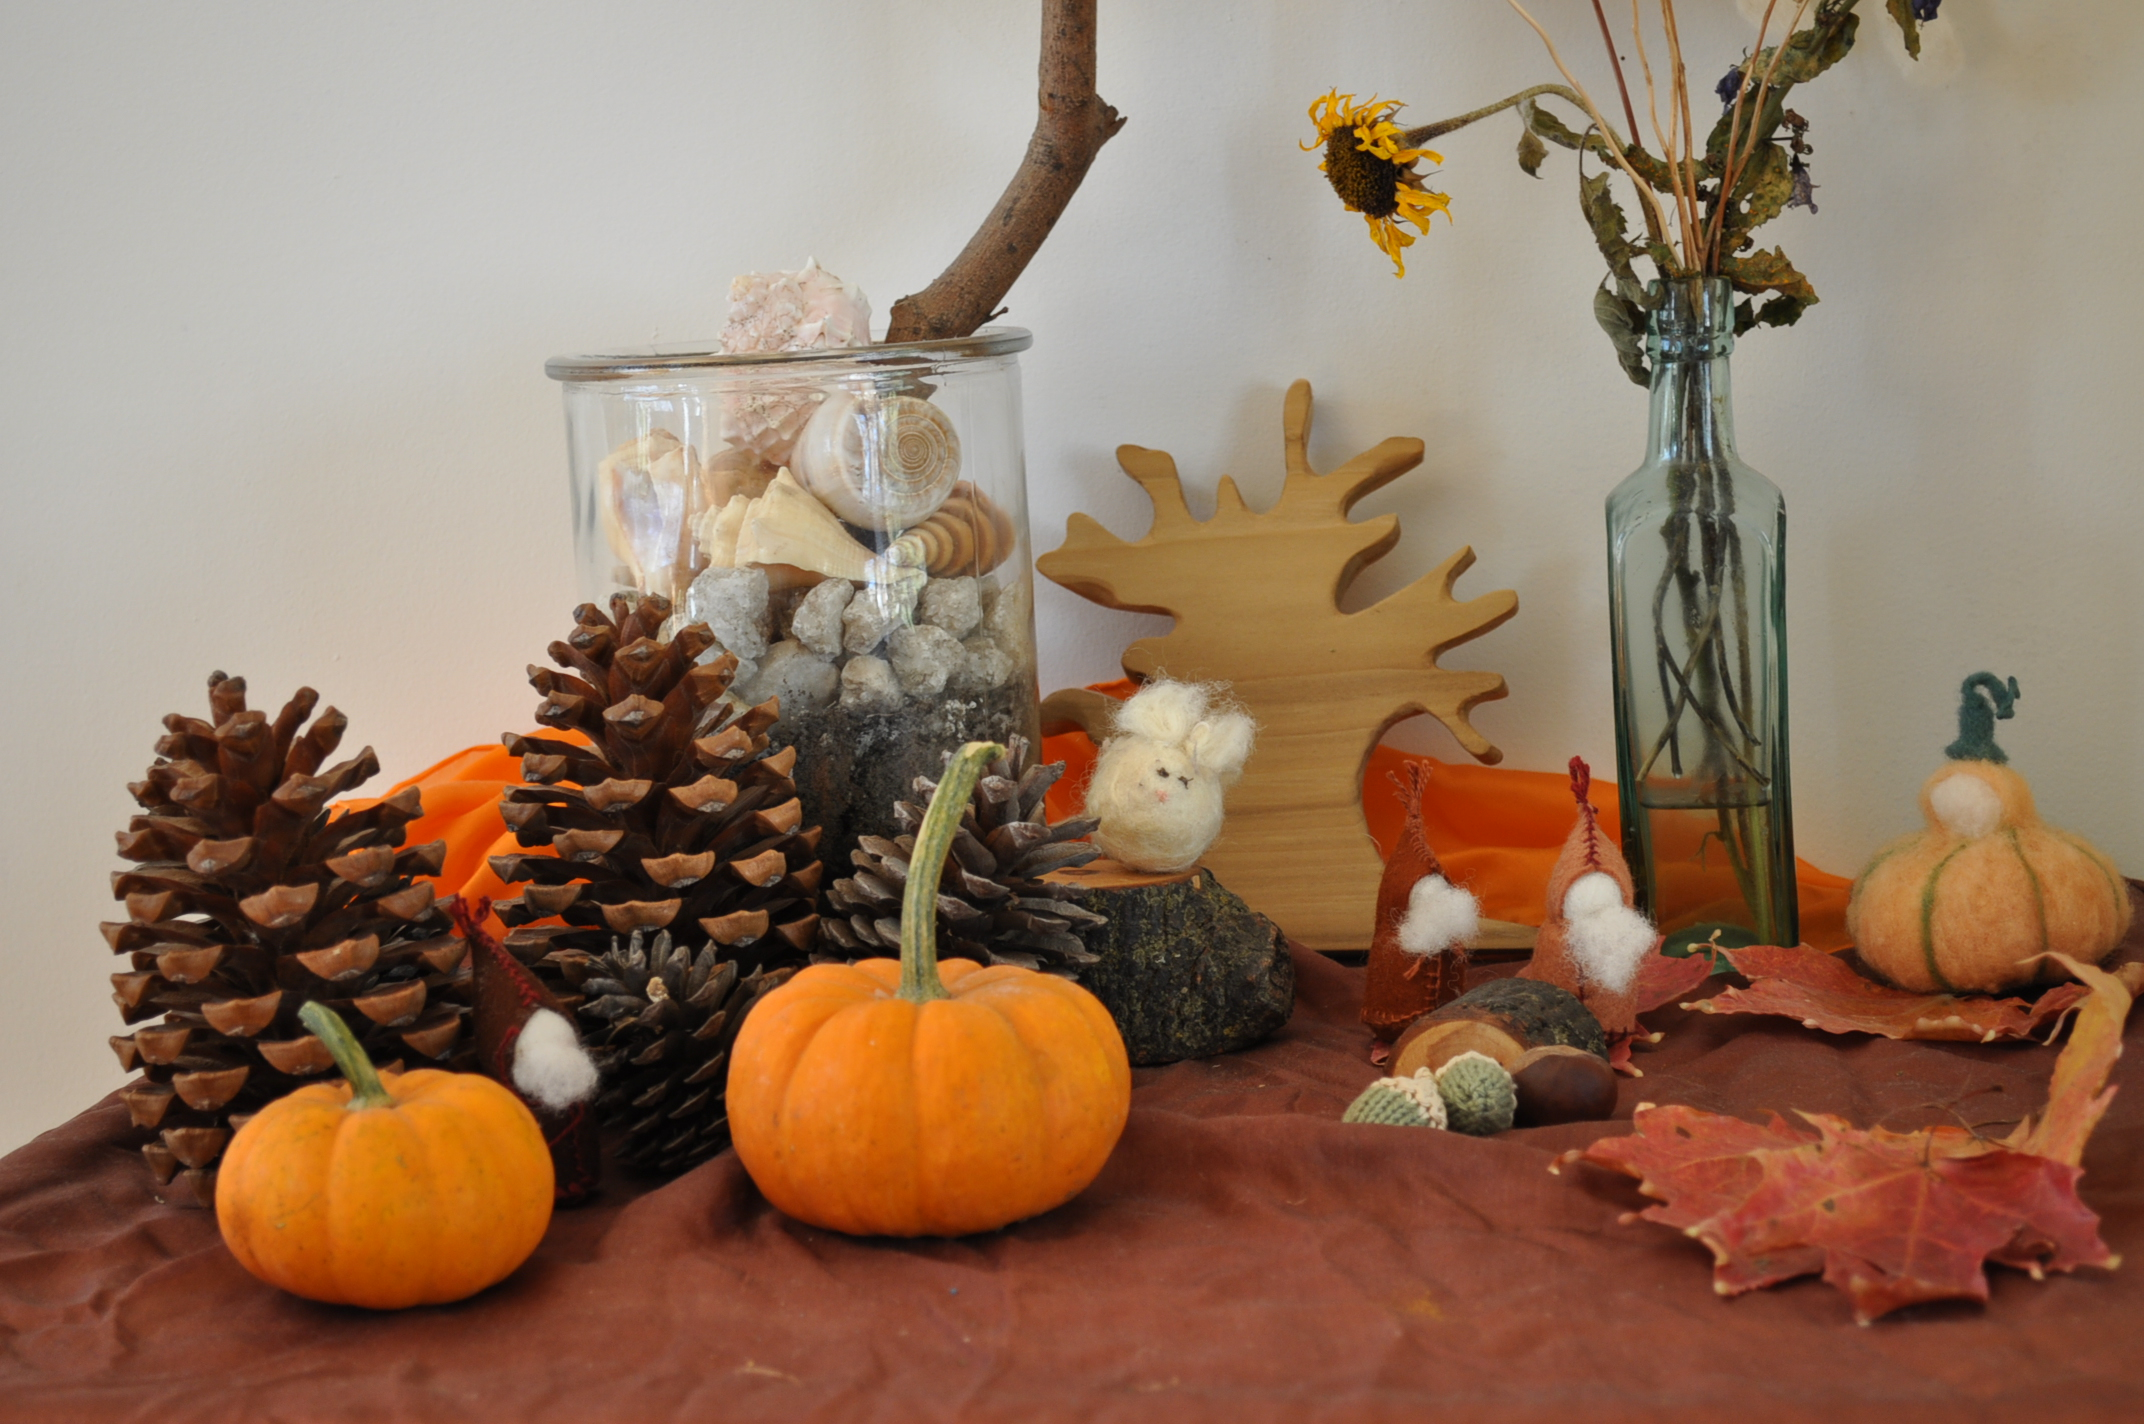 Autumn Nature table